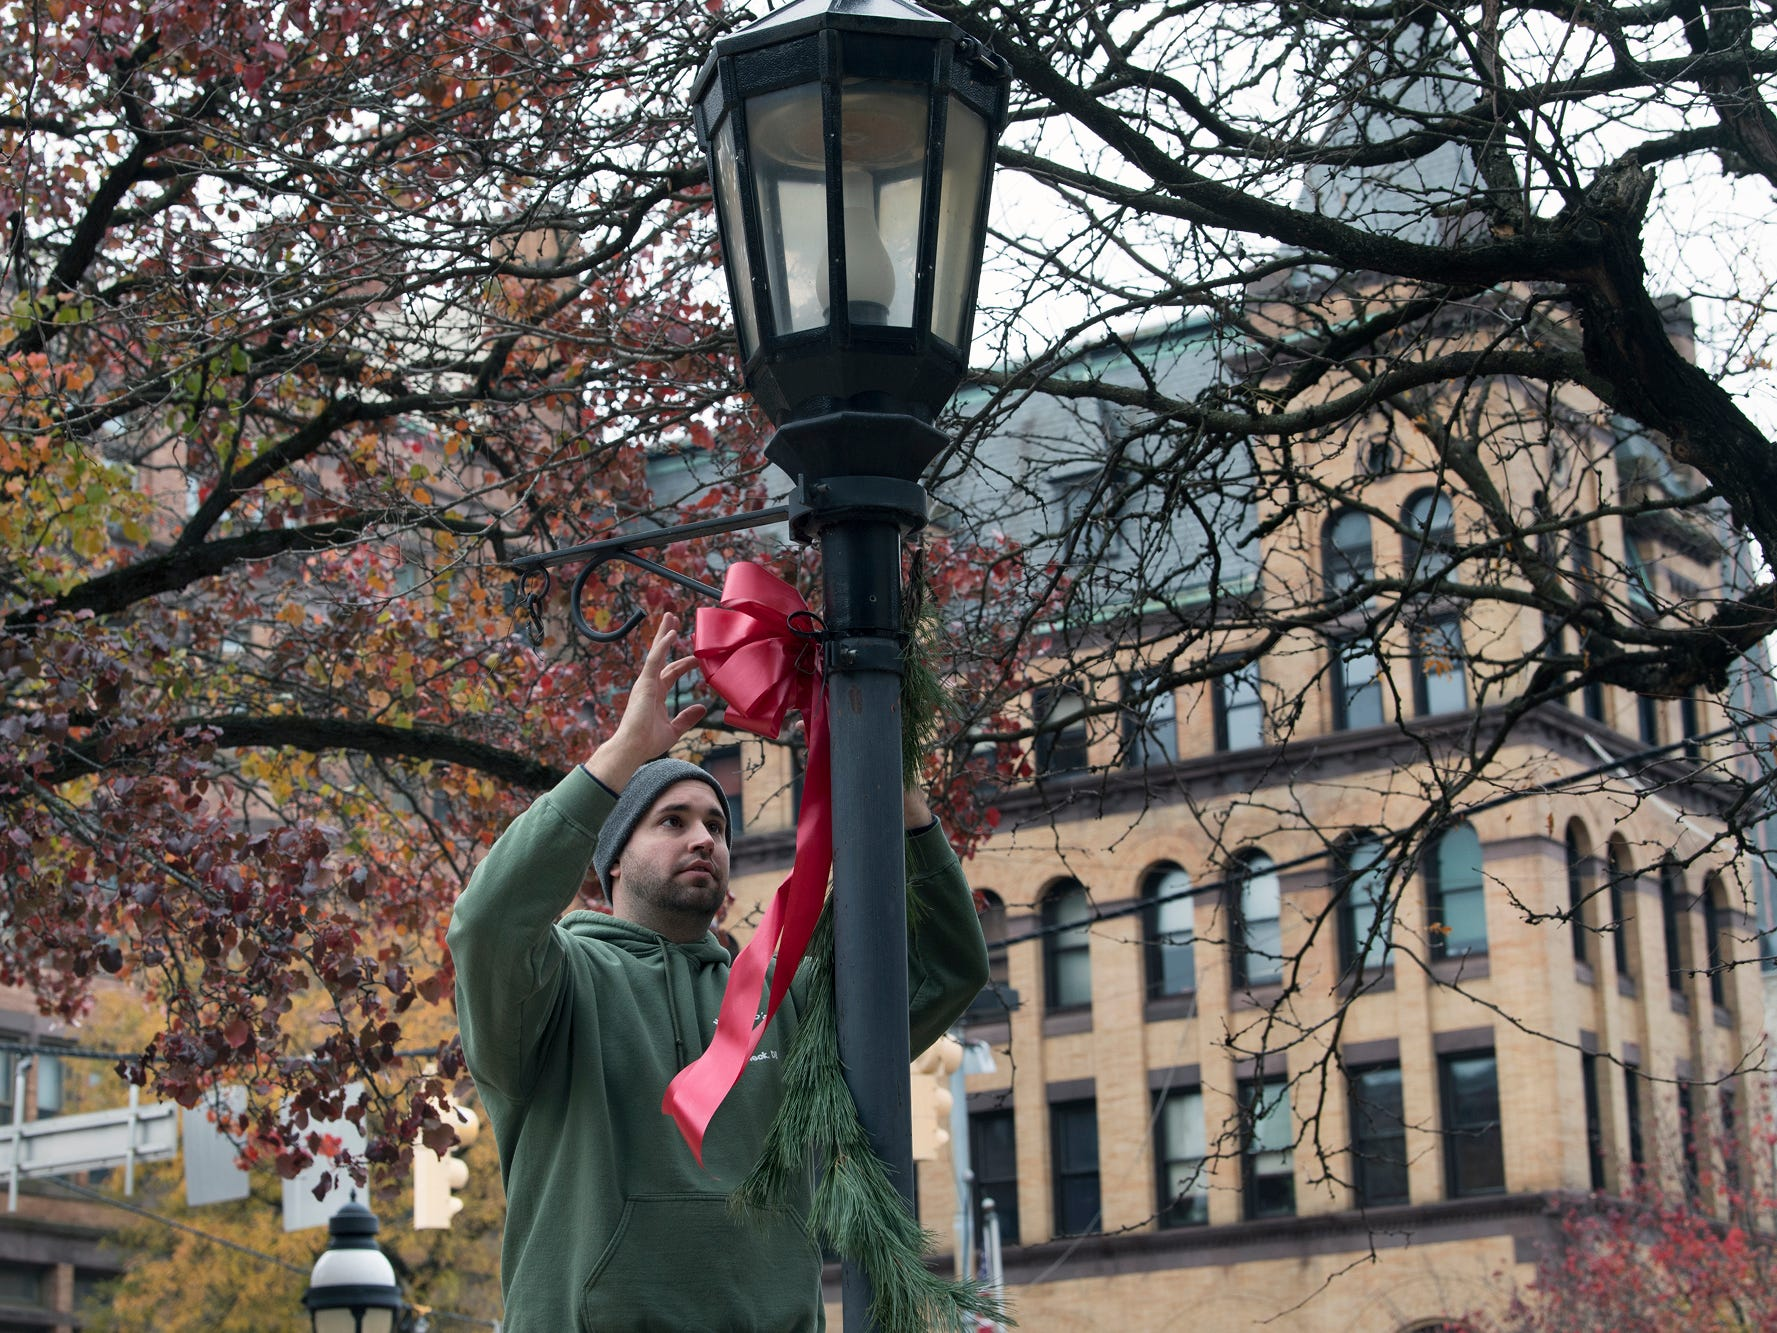 Tom Kaizar decorates a lamppost during the Hanging of the Greens around Continental Square in York Sunday November 18, 2018.